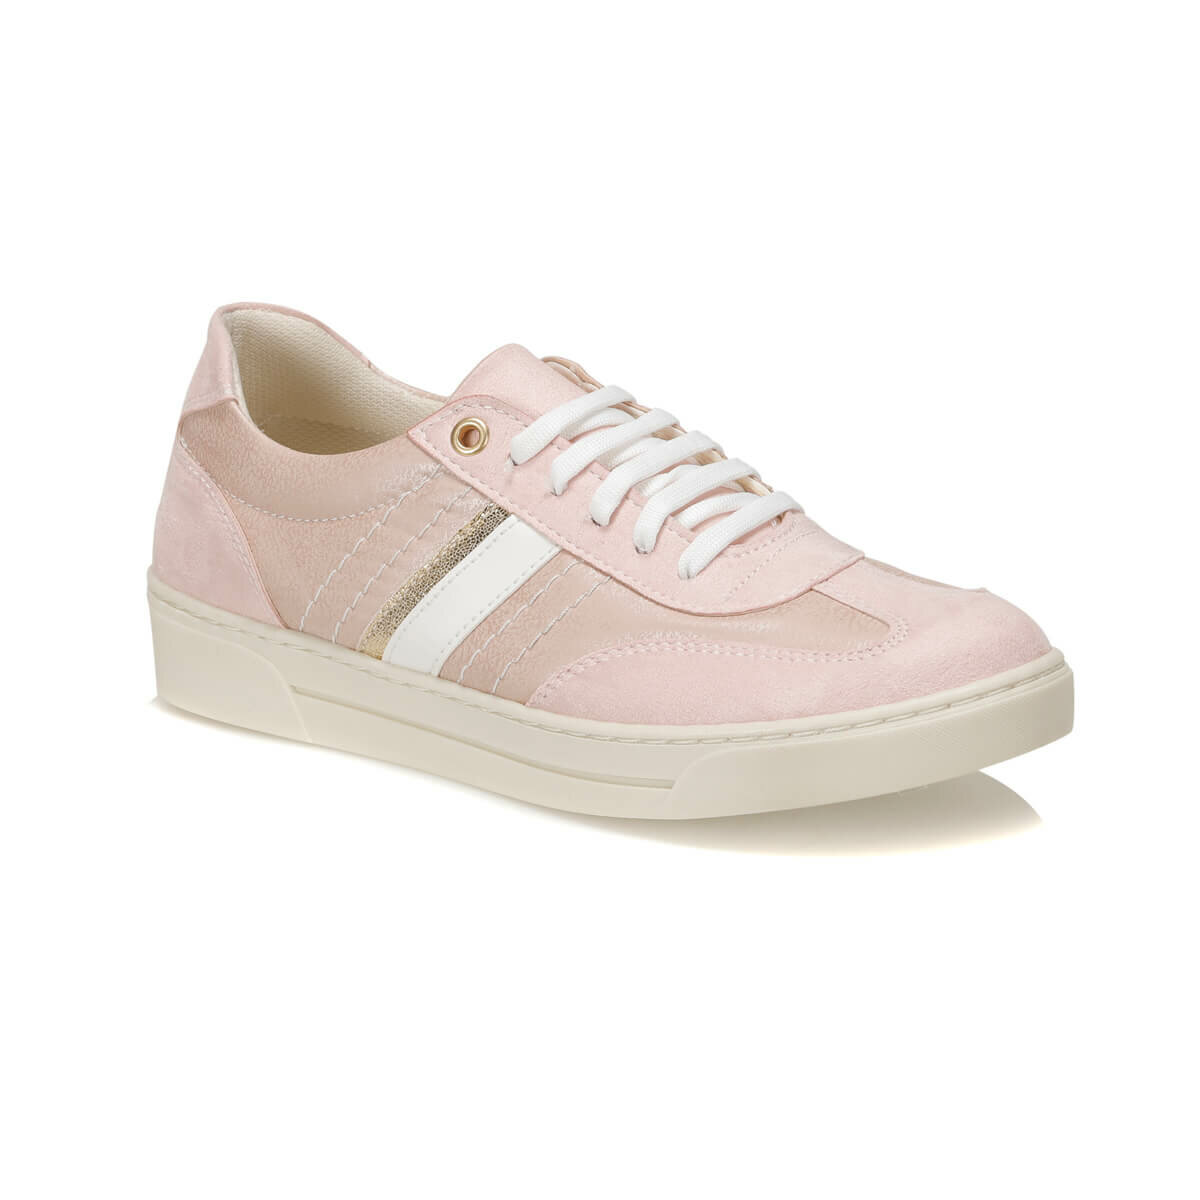 FLO 19S-503 Powder Women 'S Sneaker Shoes BUTIGO